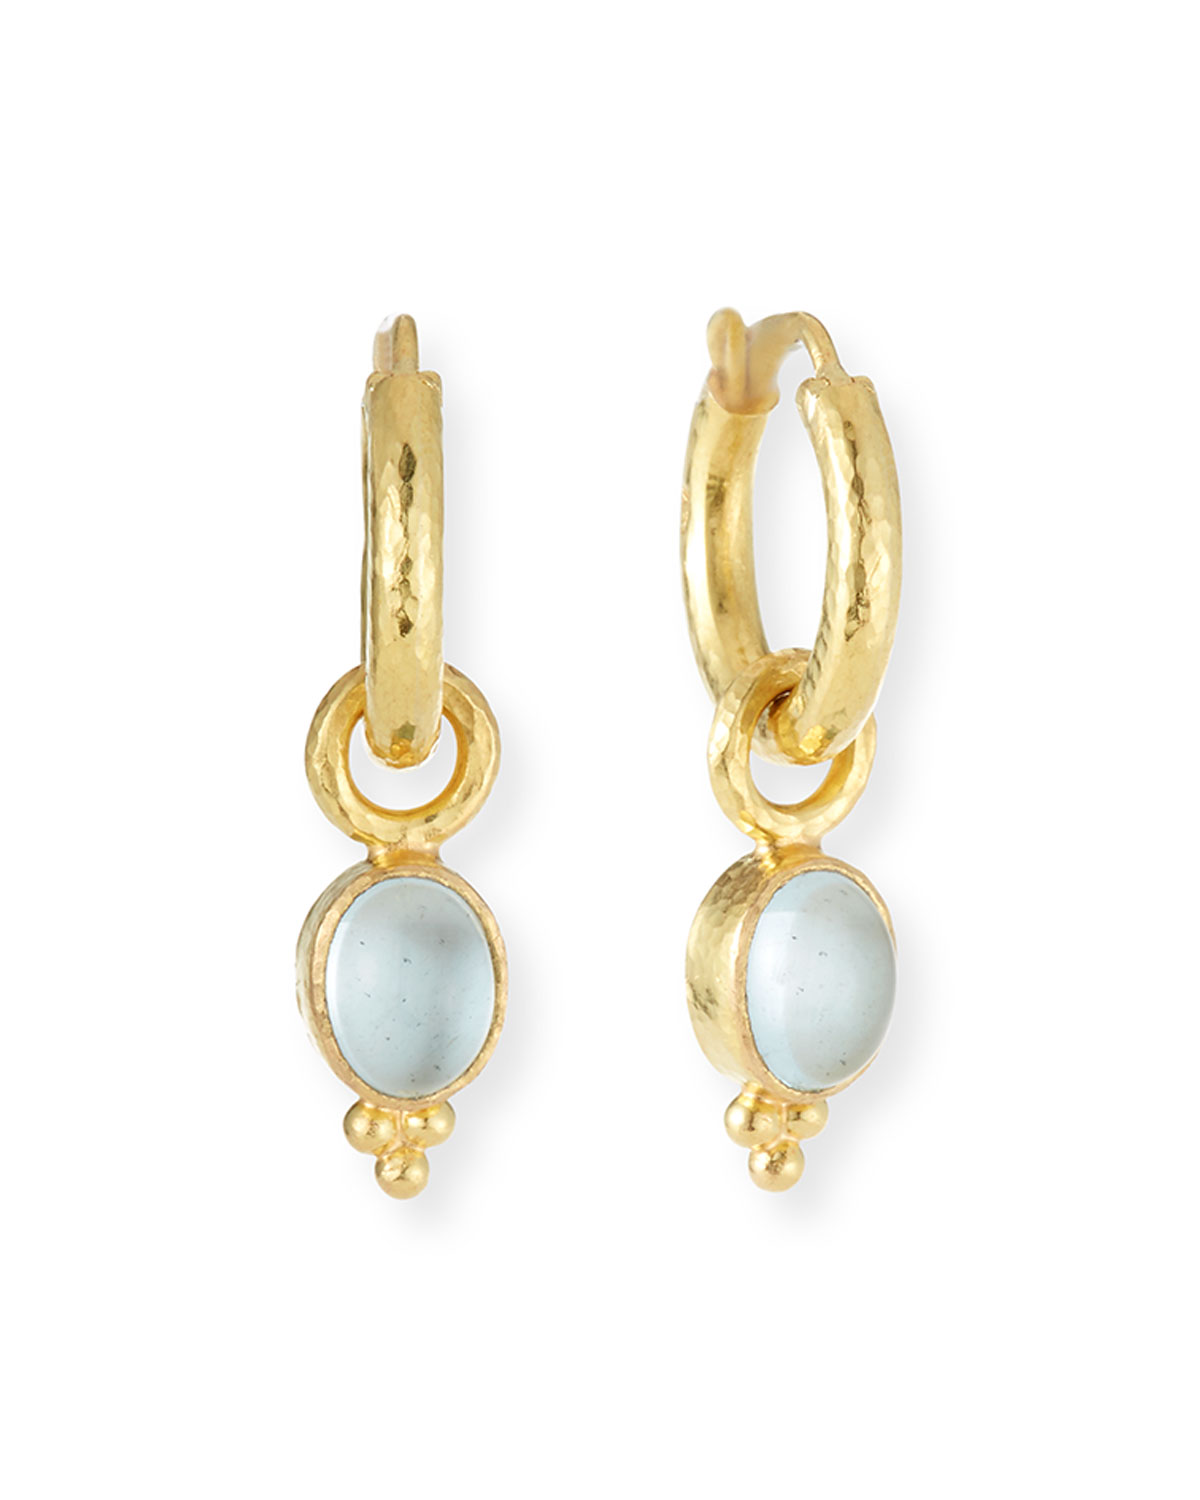 ELIZABETH LOCKE 19K GOLD AQUAMARINE EARRING PENDANTS